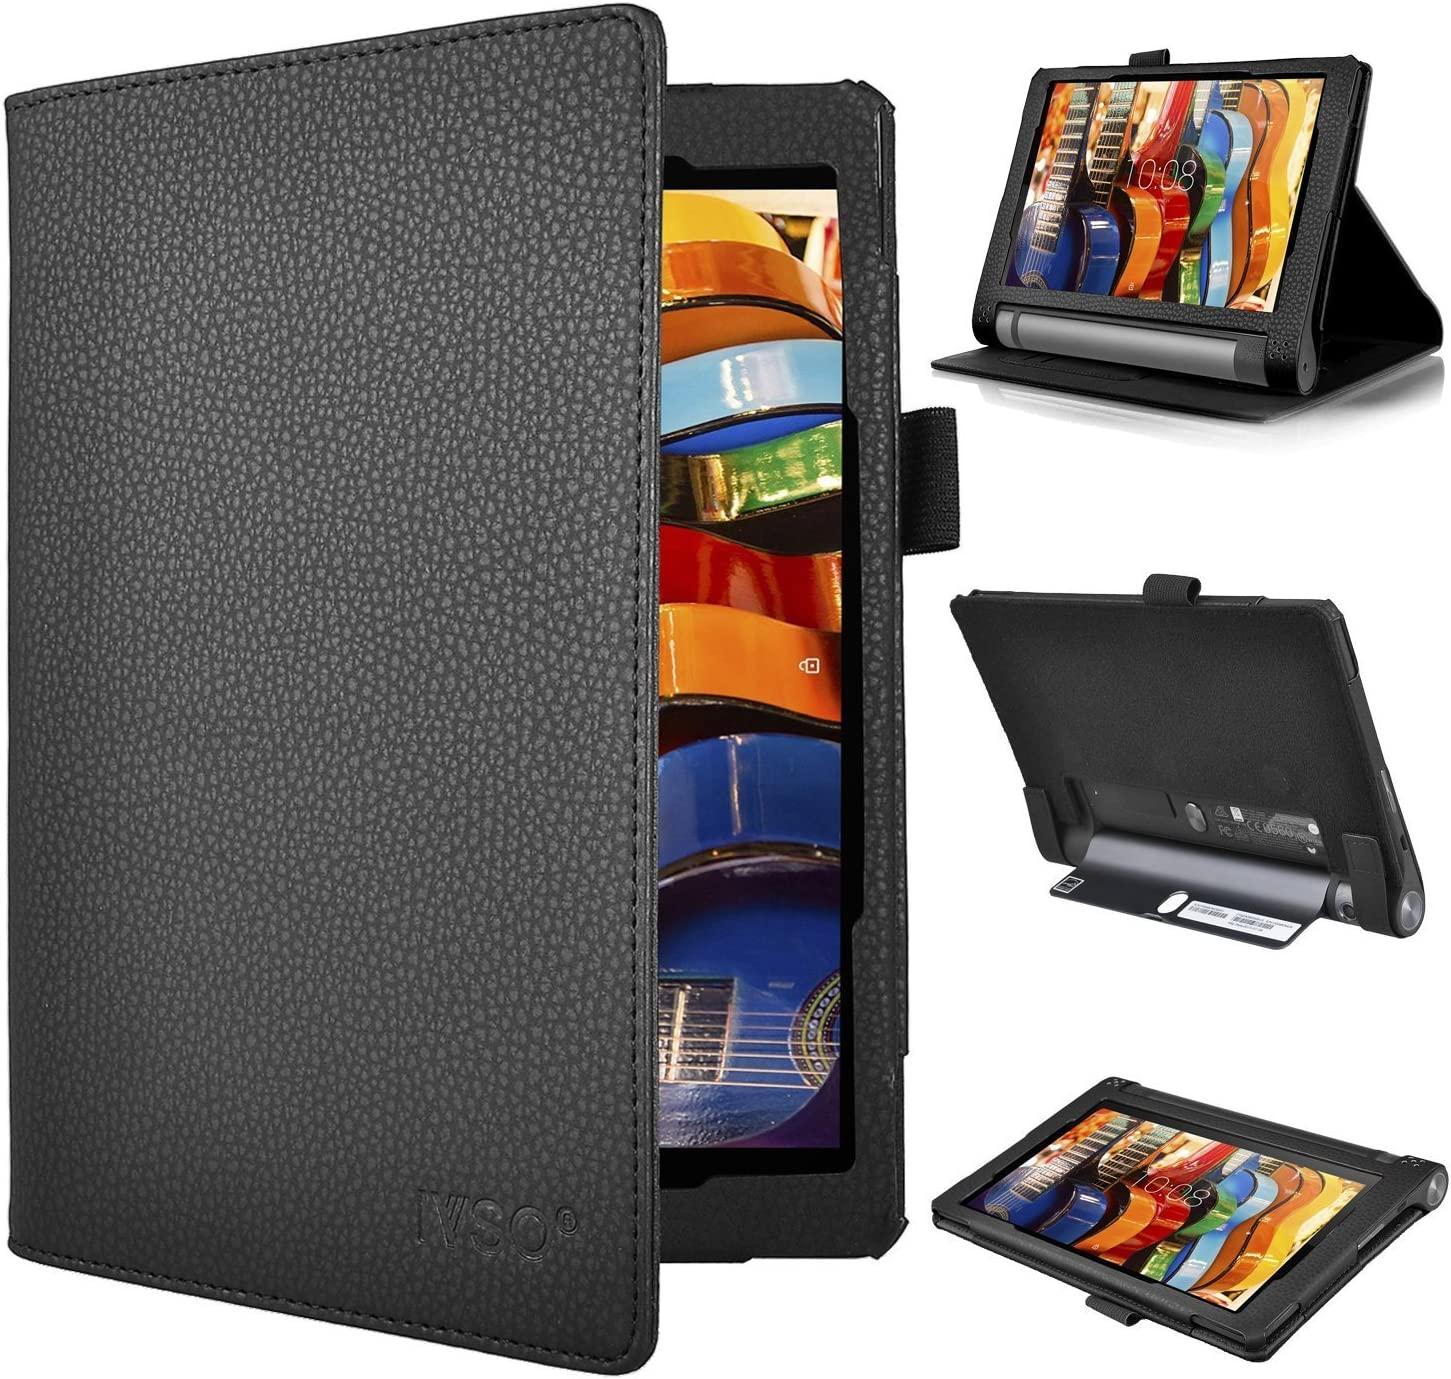 Lenovo YOGA Tab 3 8 case, KuGi ® Multi-Angle Stand Slim-Book PU Leather Cover Case with Hand Strap&Card Holder for Lenovo YOGA Tablet 3 8 inch tablet. ...